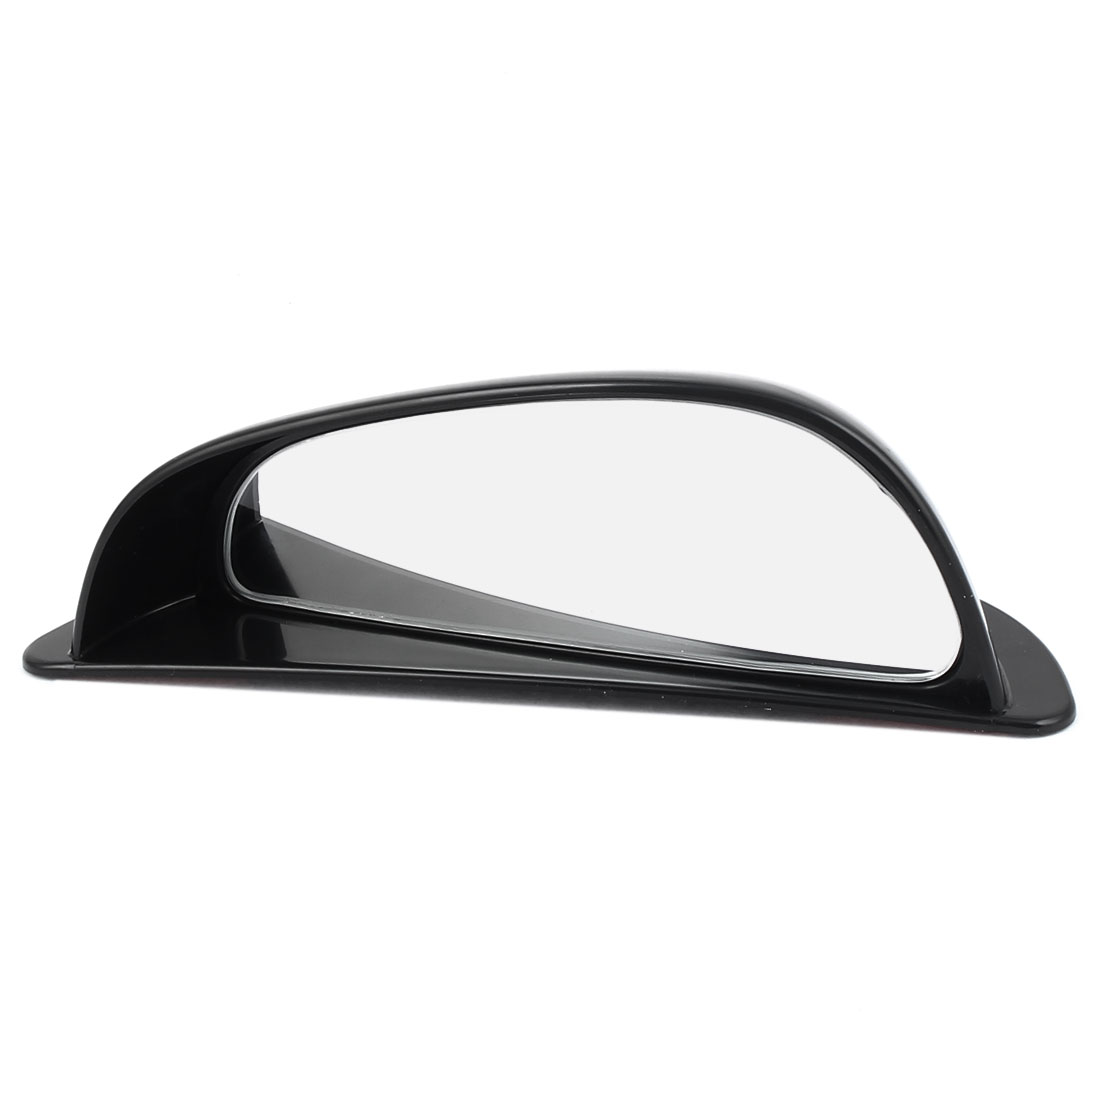 Car Vehicle Plastic Frame Wide Angle Right Side Rear View Blind Spot Mirror